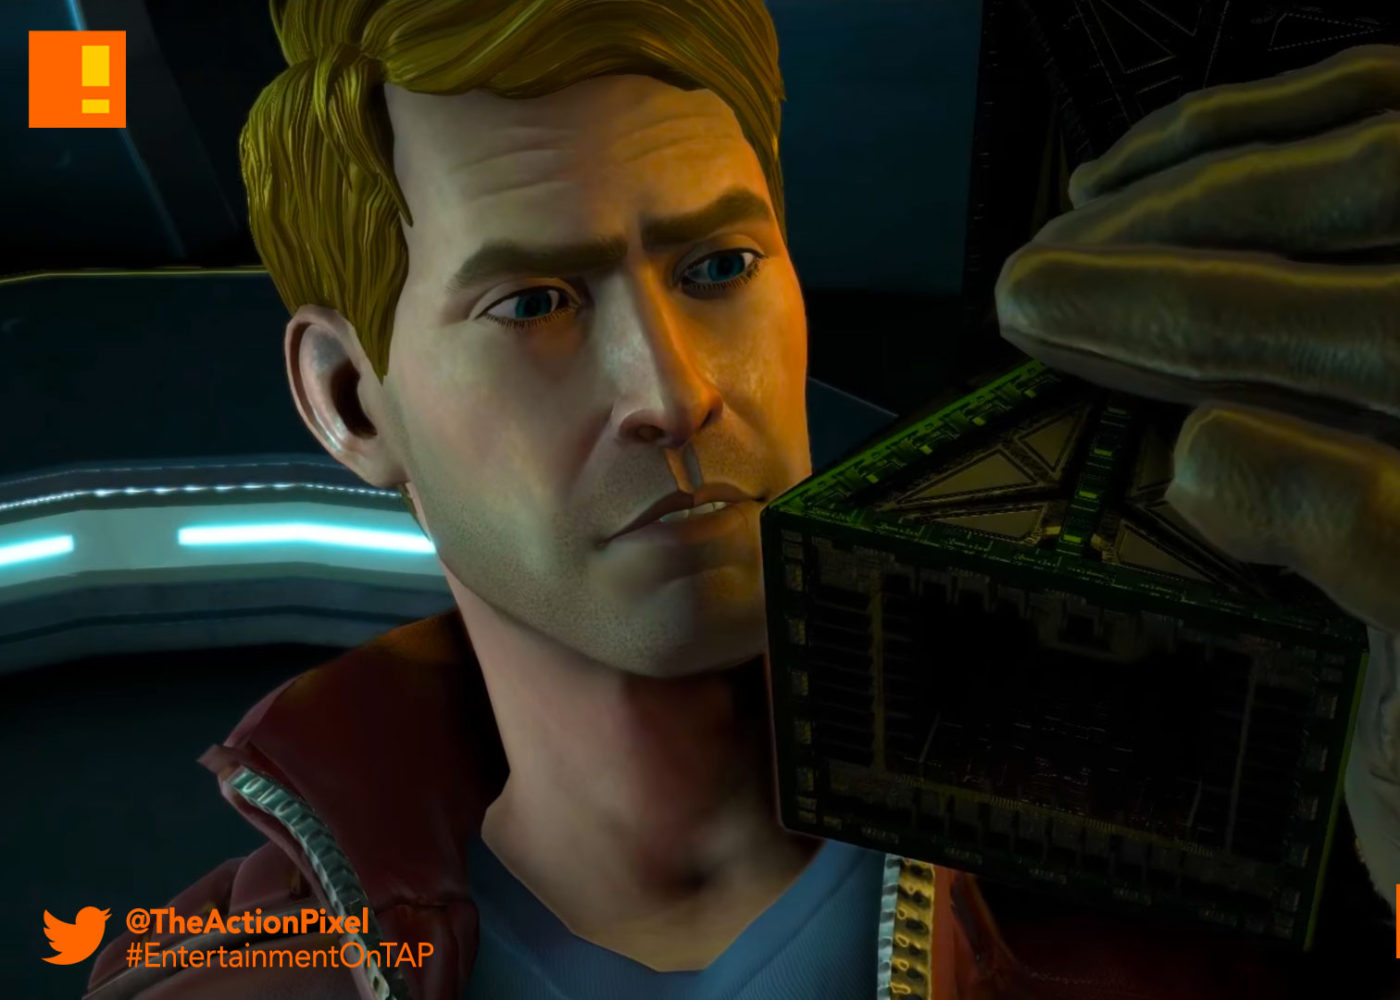 under pressure,gotg,telltale, episode 2, gotg, telltale games, telltale series, marvel, guardians of the galaxy, entertainment on tap, the action pixel,rocket ,raccoon, star-lord, drax, gamora,trailer, official trailer, launch trailer,thanos,star lord